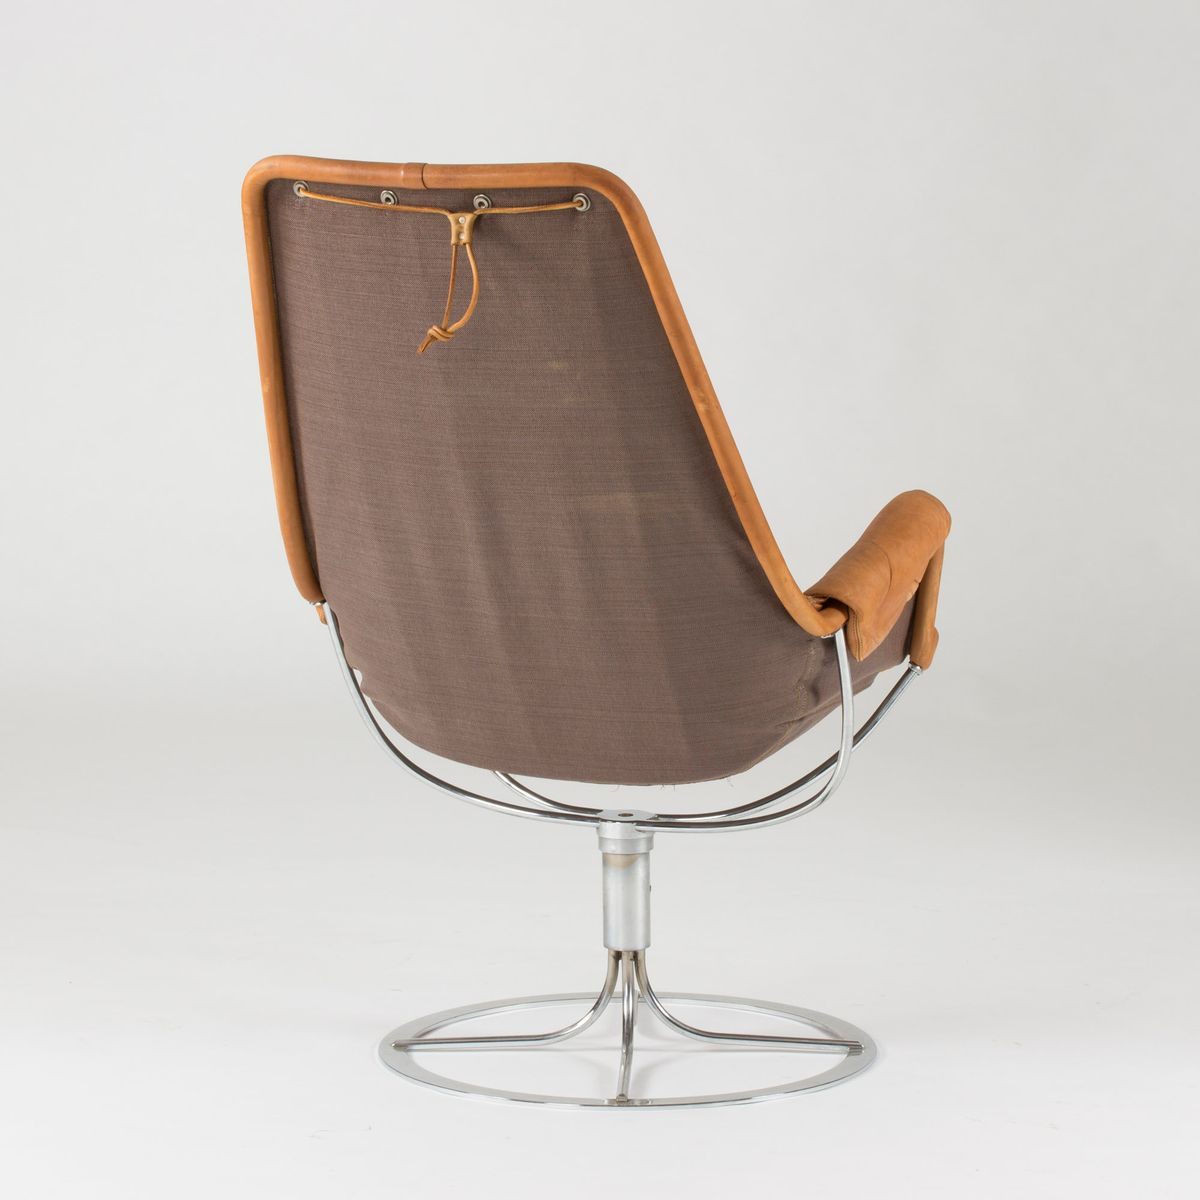 Jetson Cognac Leather Lounge Chair by Bruno Mathsson for